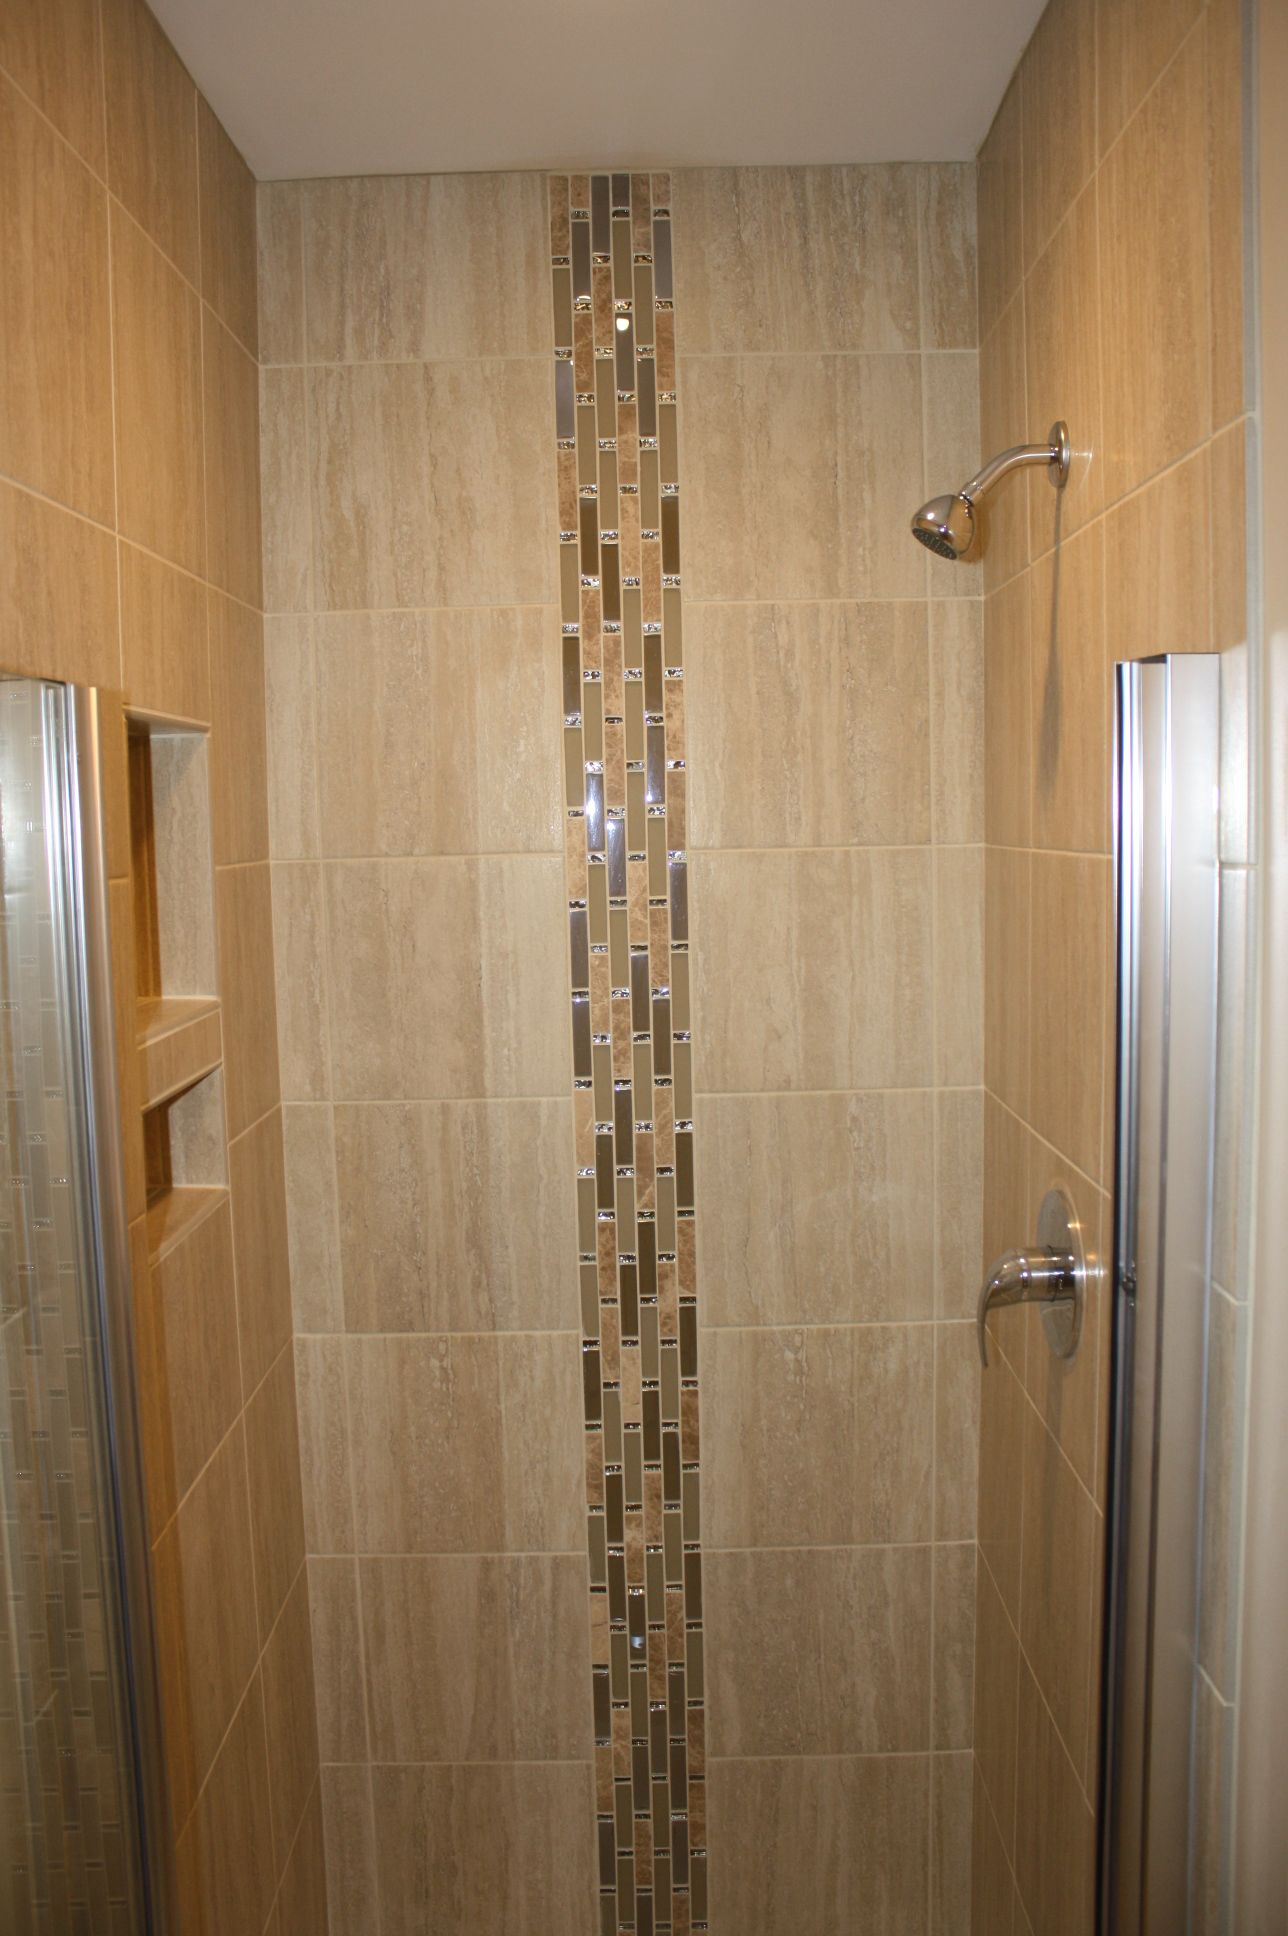 3x3 Shower Area Using 12x12 Porcelain Tiles With A Linear Glass Combination Waterfall Accent Double Niche Is 12x12 And 6 Tile Bathroom Tile Patterns Shower